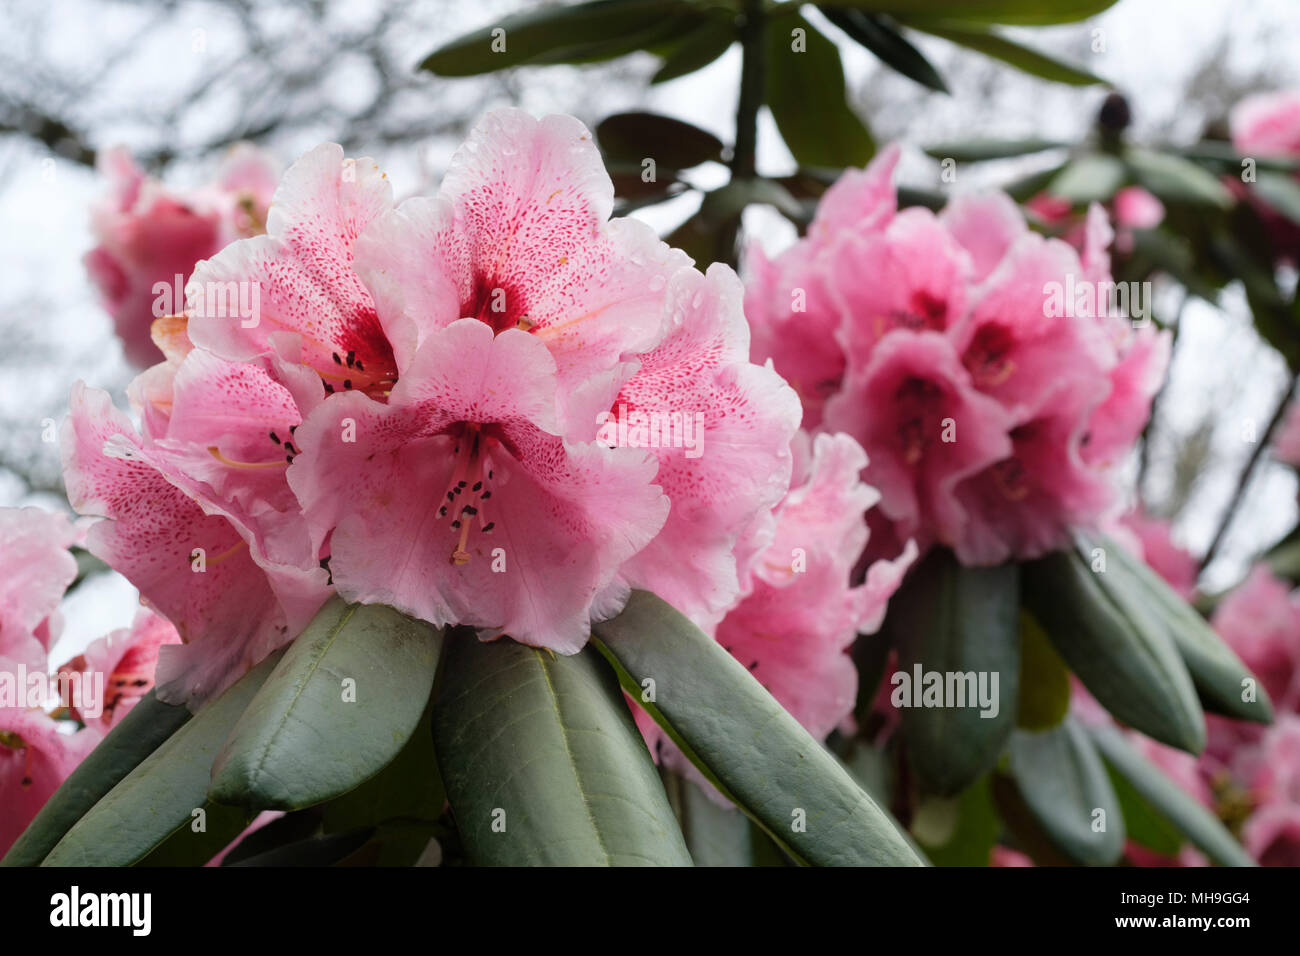 Close Up Of The Pink Flowers Of The Rhododendron Lady Linlithgow